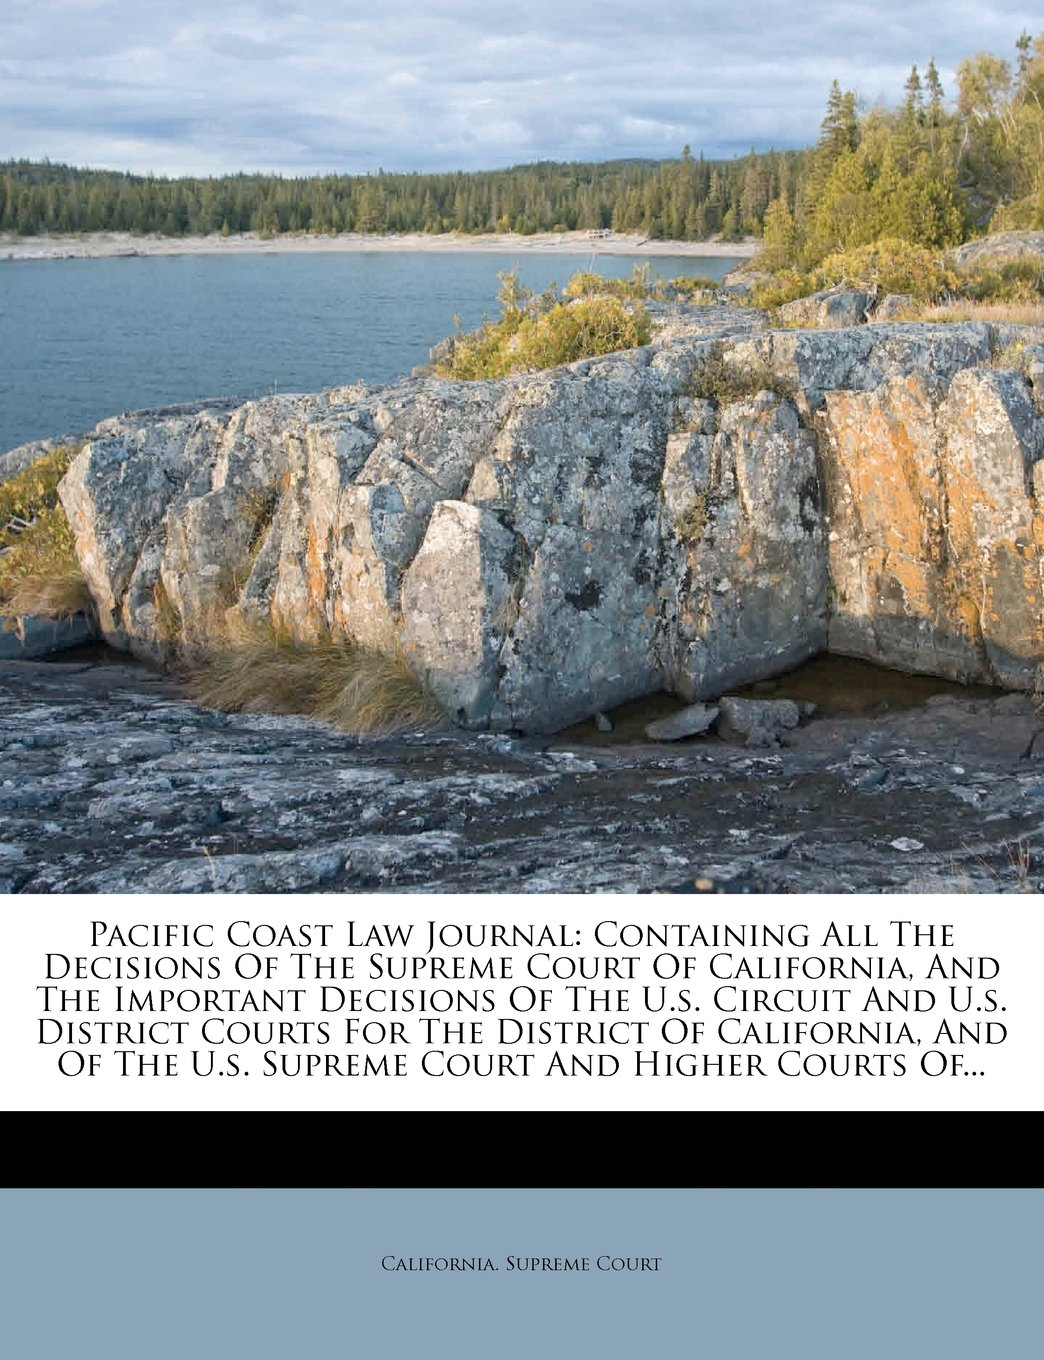 Pacific Coast Law Journal: Containing All The Decisions Of The Supreme Court Of California, And The Important Decisions Of The U.s. Circuit And U.s. ... U.s. Supreme Court And Higher Courts Of... PDF